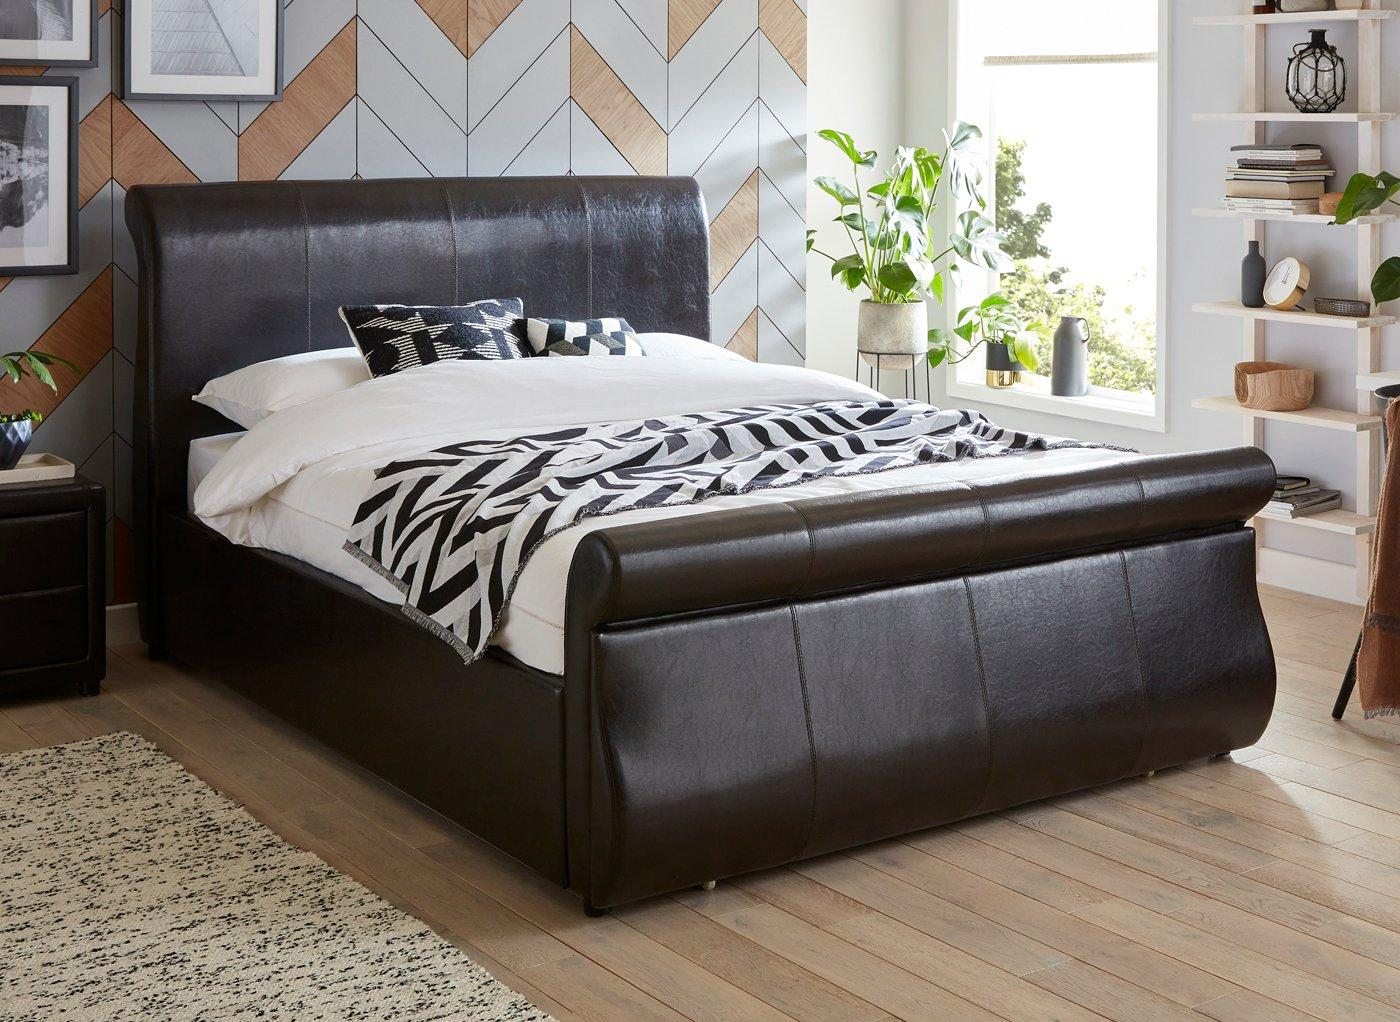 detroit-upholstered-bed-frame